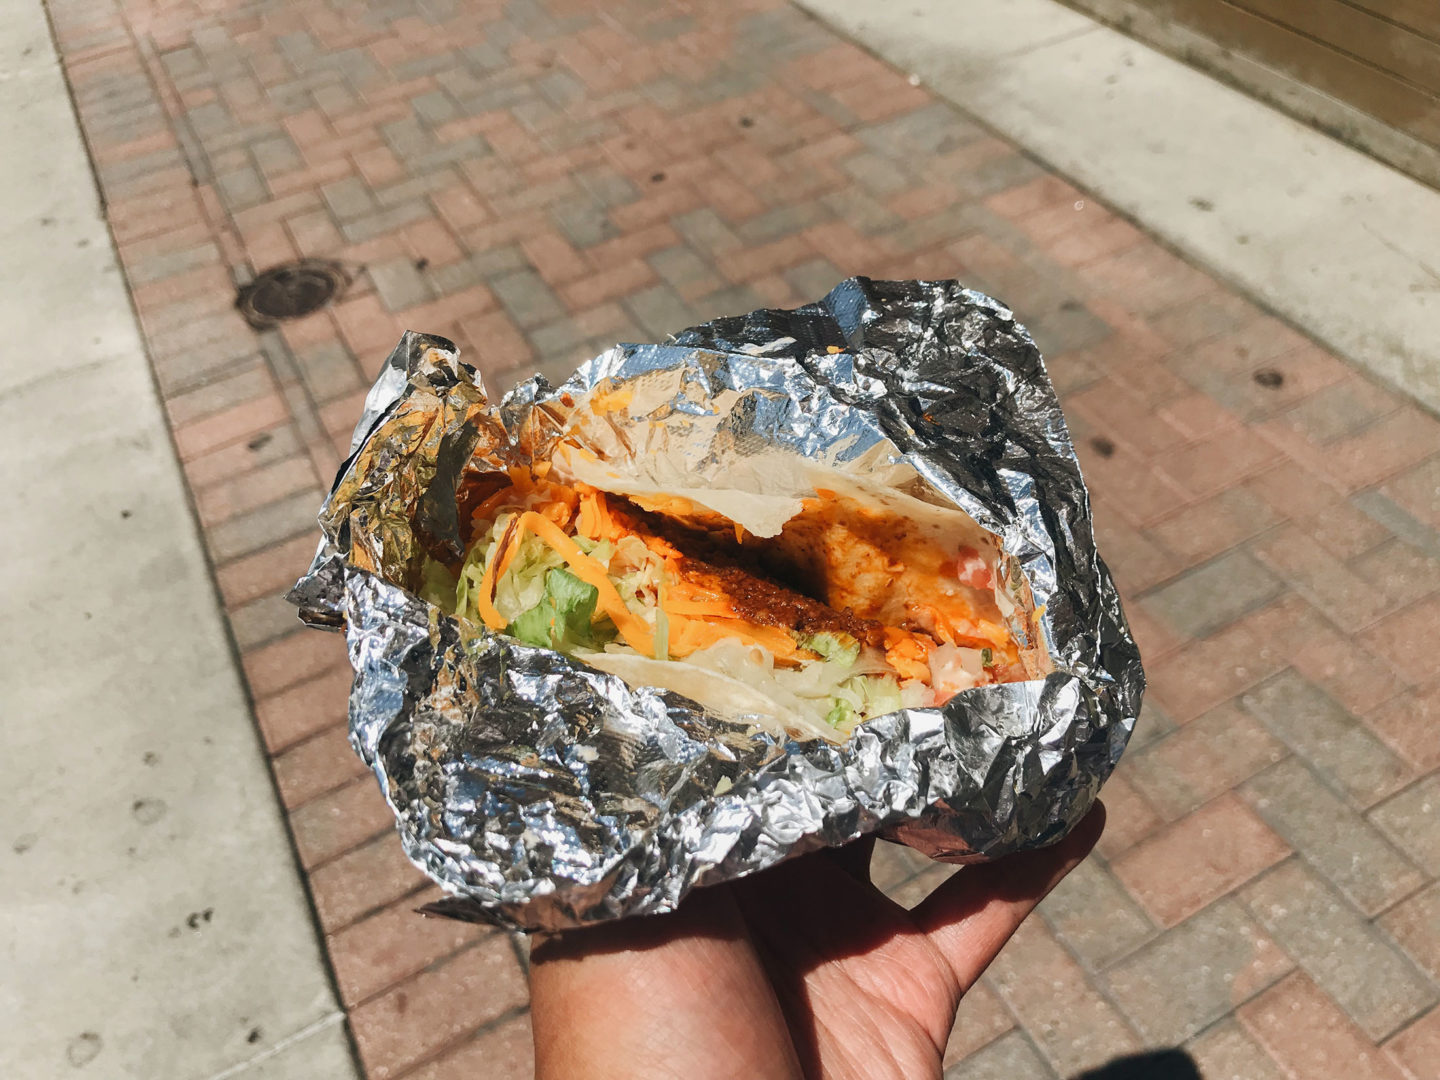 Tacos from Barrio, Cleveland, Ohio